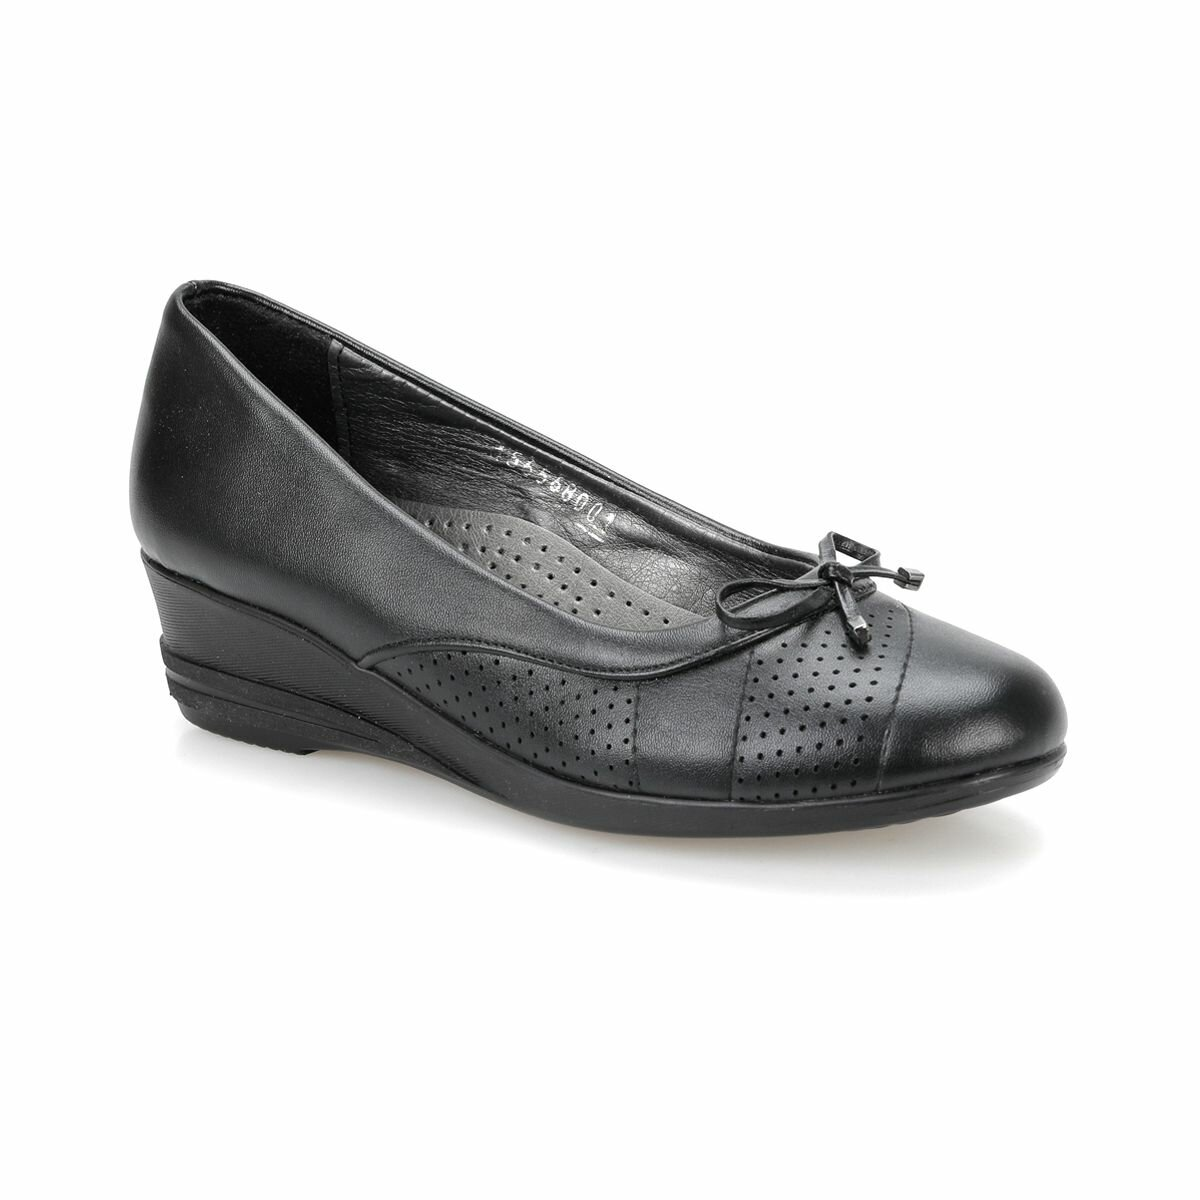 FLO 61.156568FZ Black Women Shoes Polaris